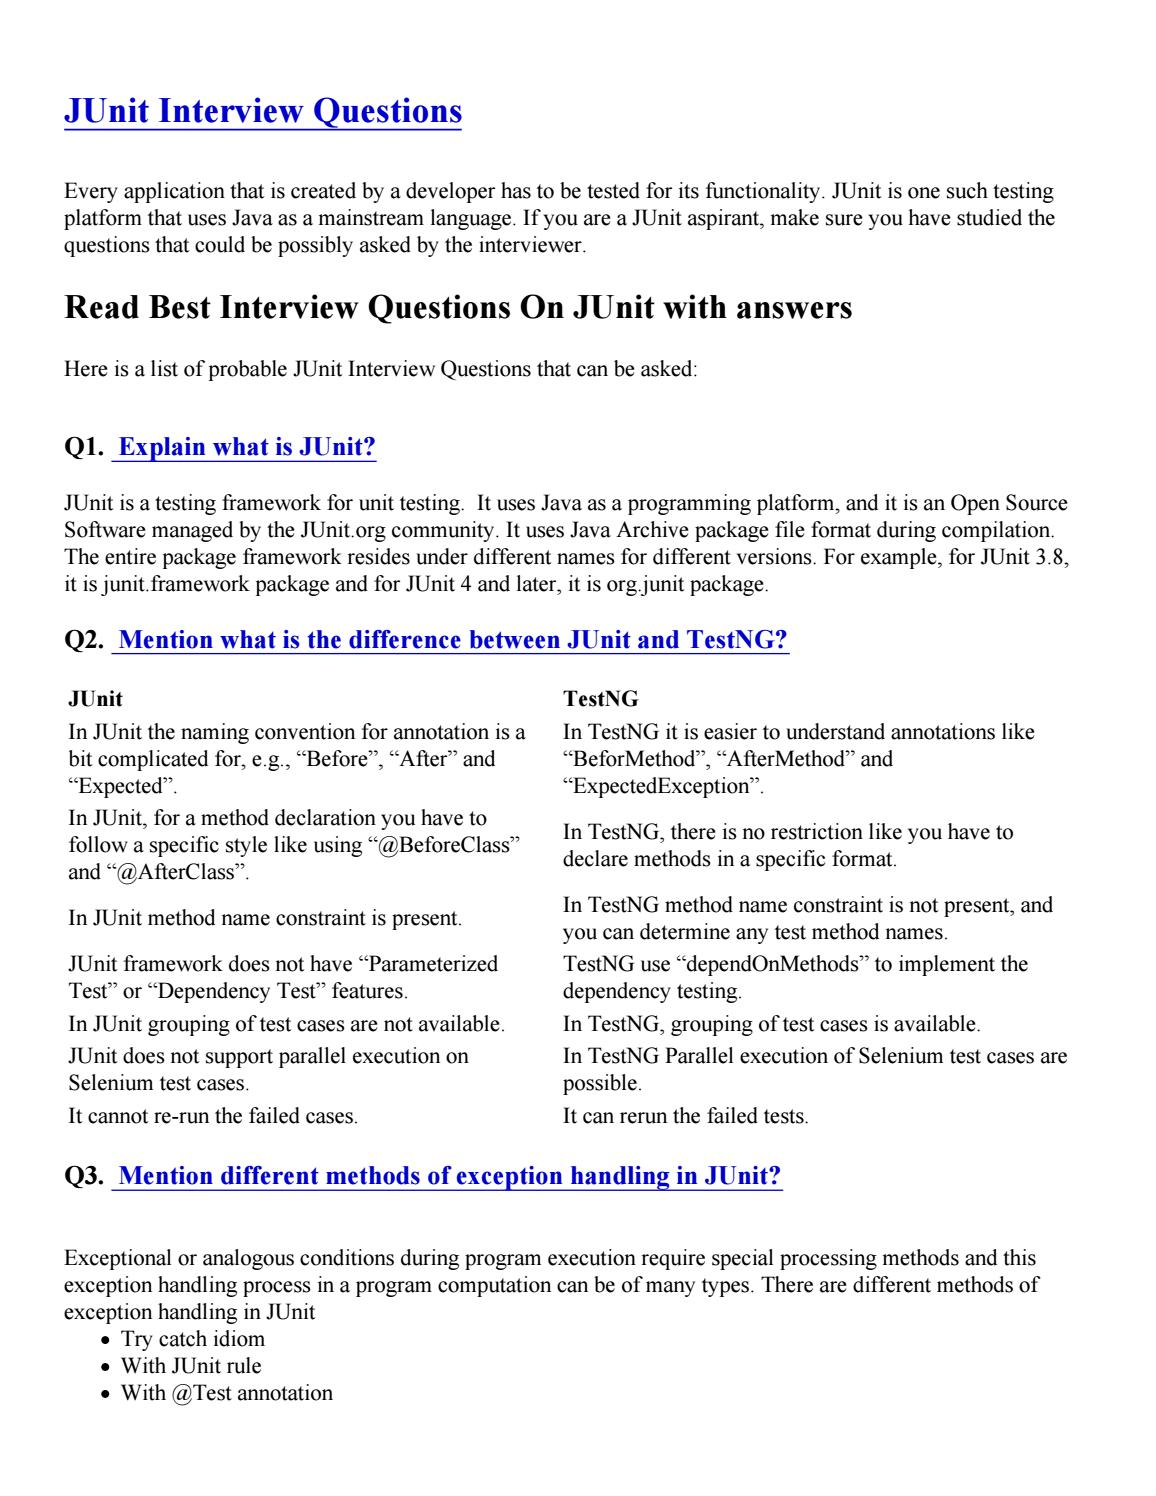 JUnit Interview Questions by mayankseo16 - issuu